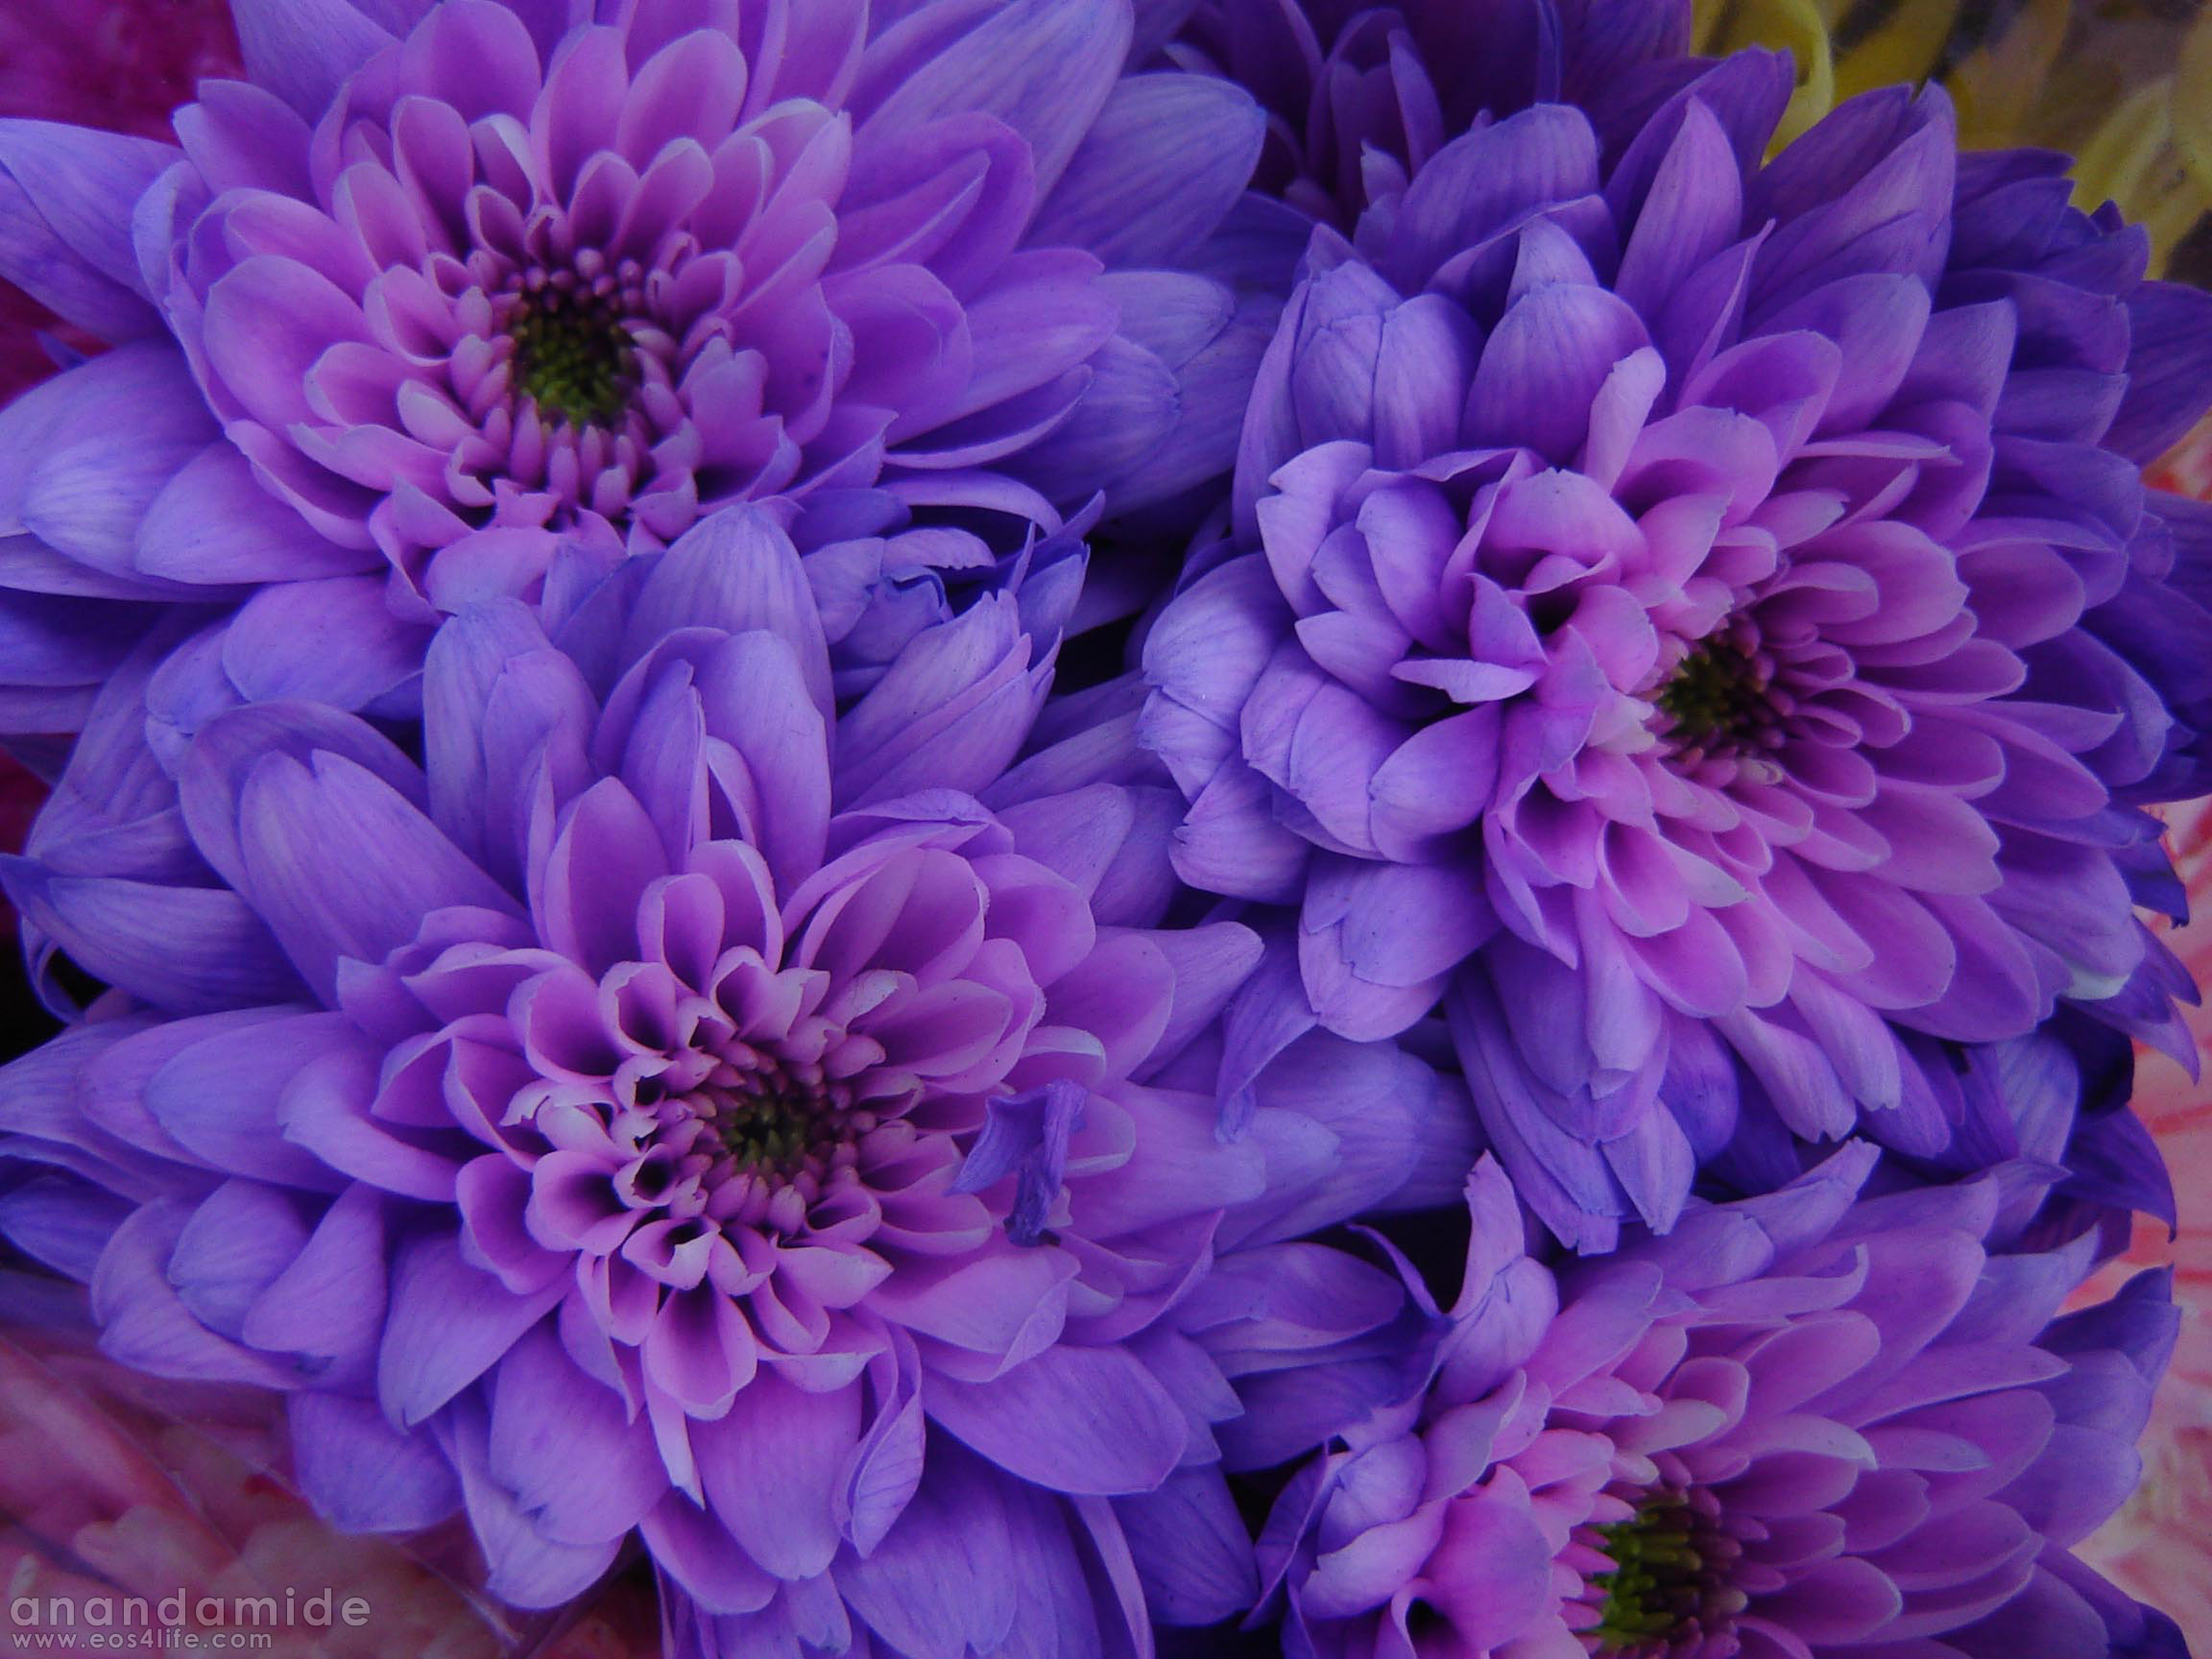 Cool flowers and their names flowers healthy pink flowers and their names hd wallpaper mightylinksfo